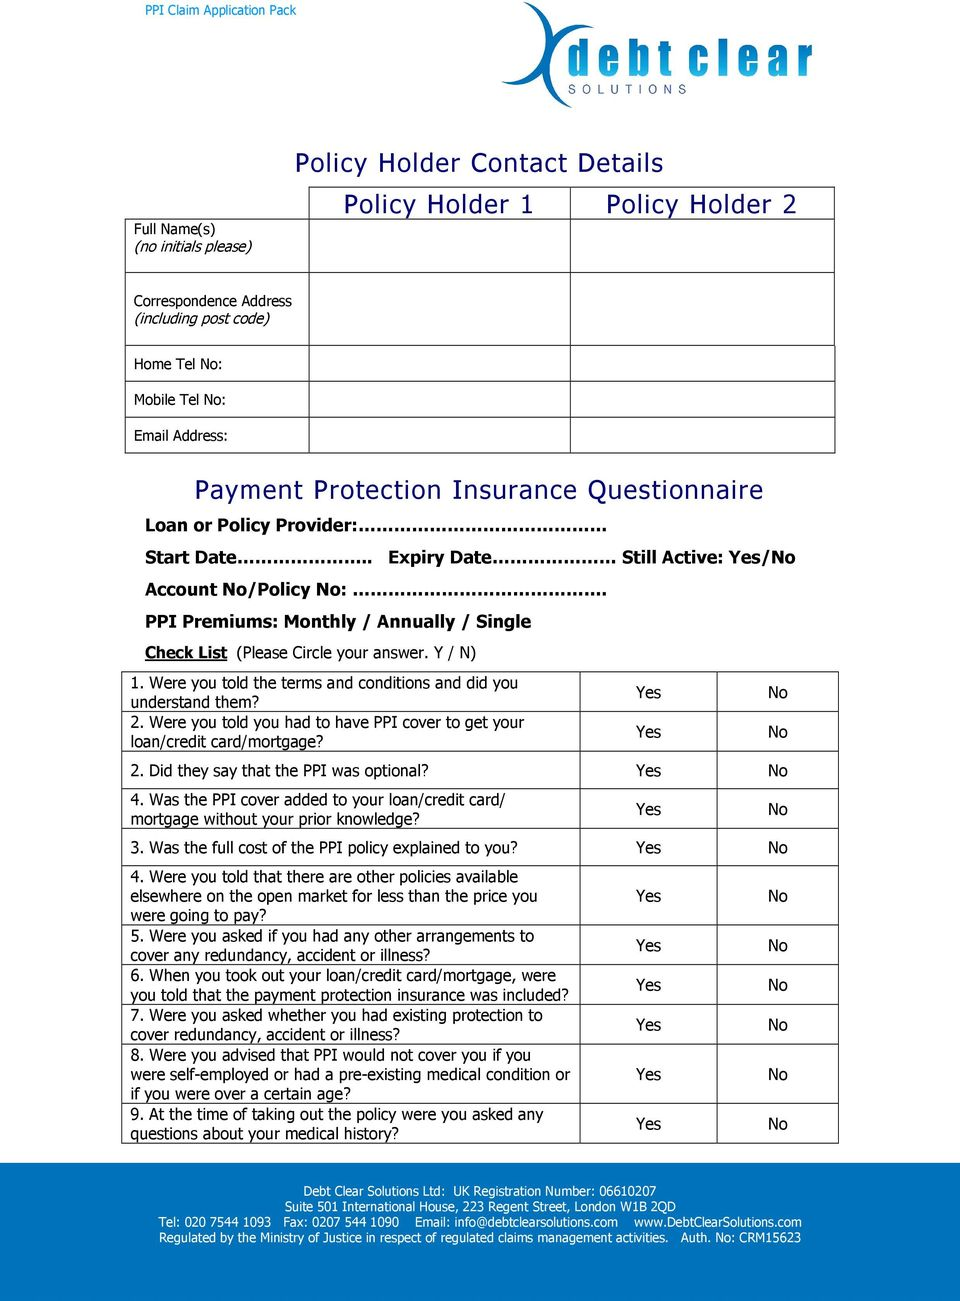 Were you told the terms and conditions and did you understand them? 2. Were you told you had to have PPI cover to get your loan/credit card/mortgage? 2. Did they say that the PPI was optional? 4.